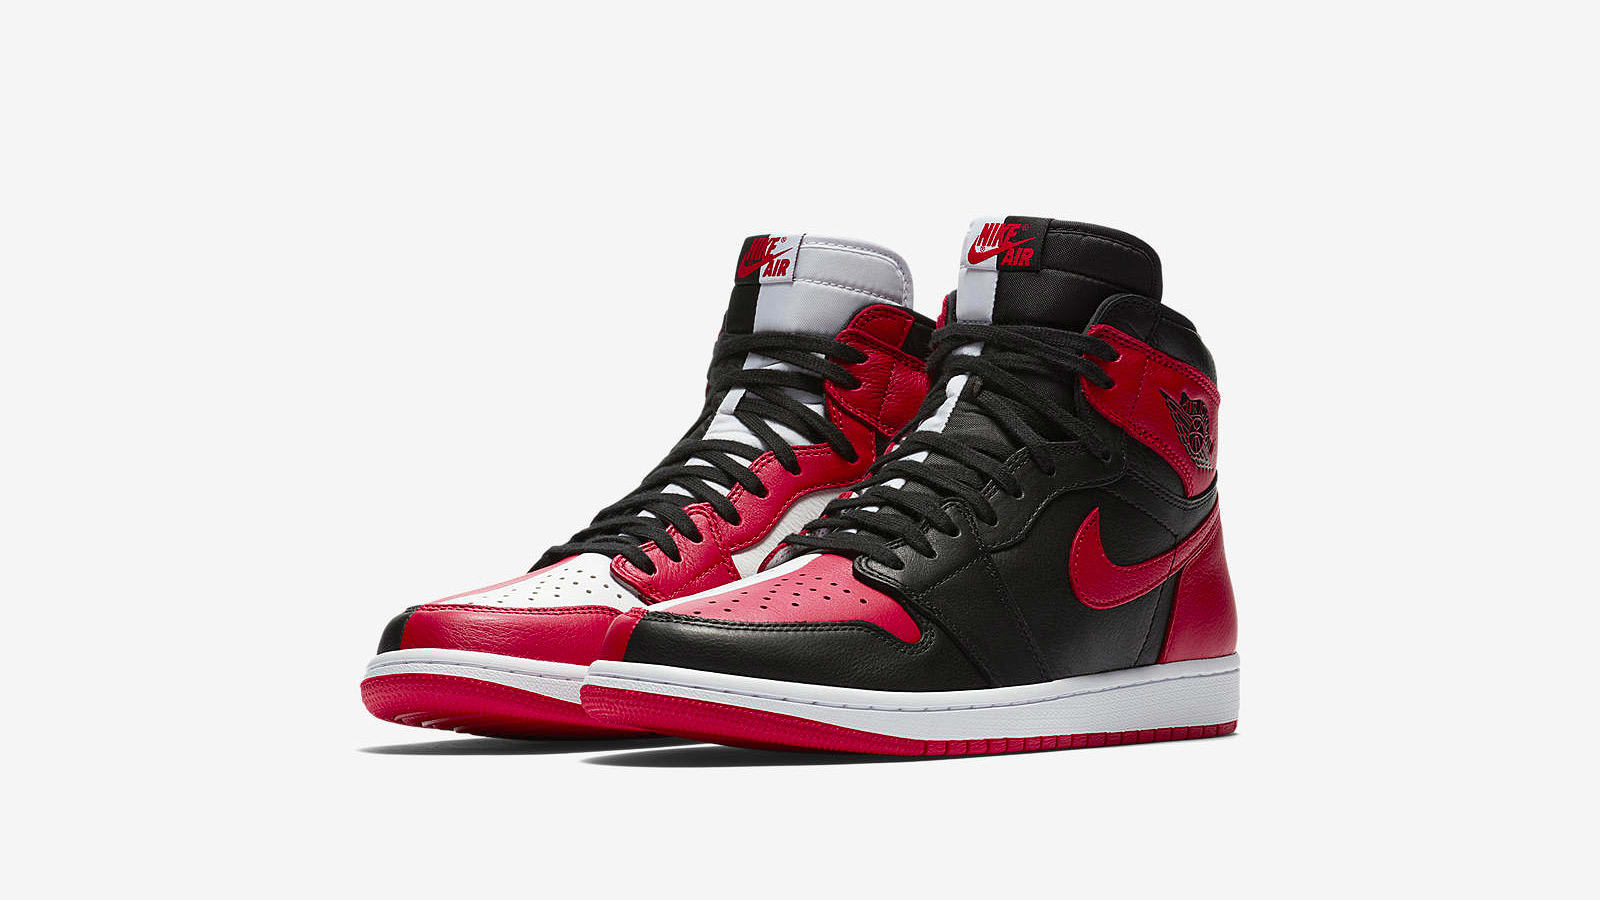 reputable site a5bea fca26 END. Features | Air Jordan 1 'Homage to Home' - Register now ...